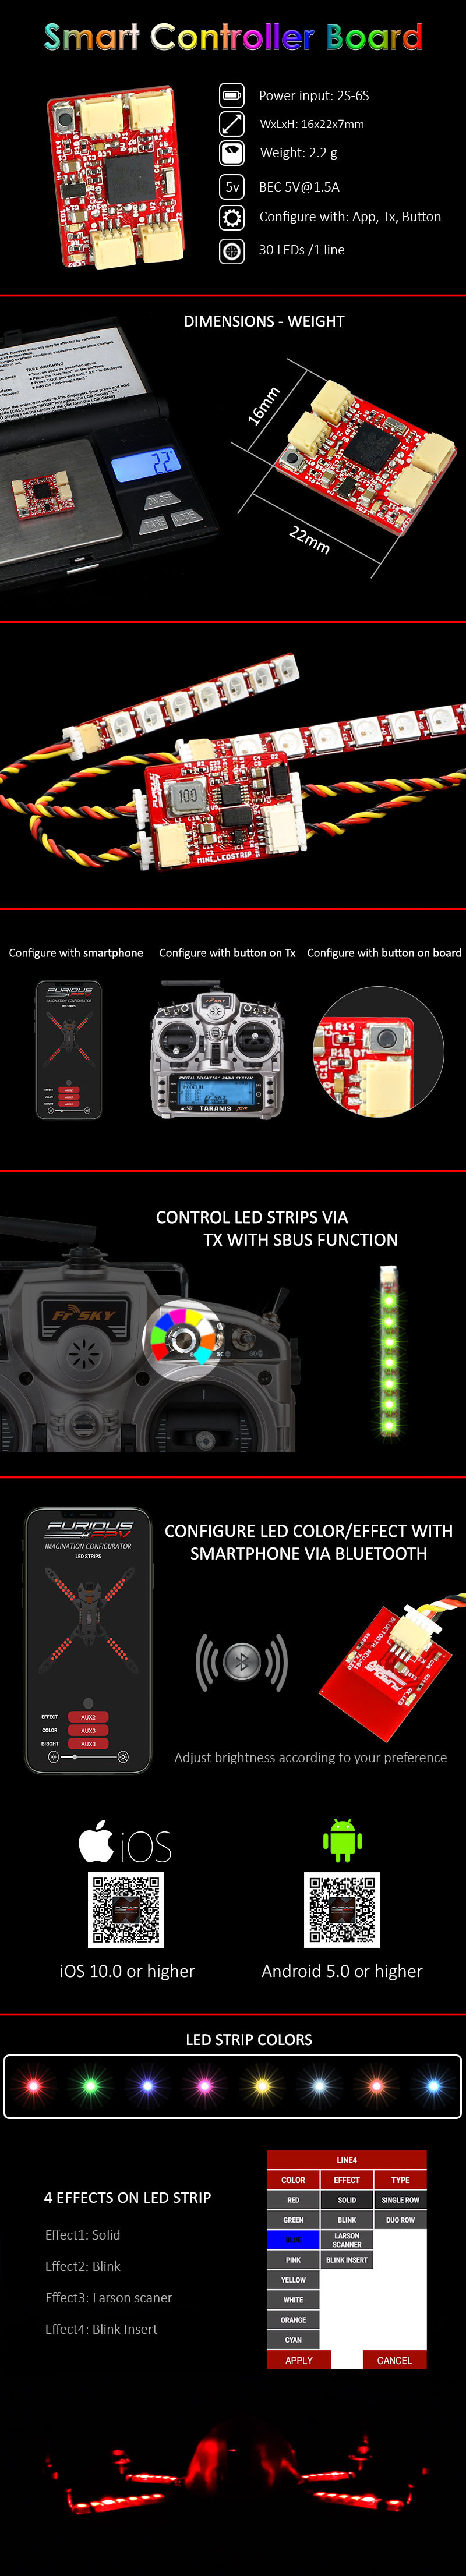 FuriousFPV LED Strip Smart Controller Board